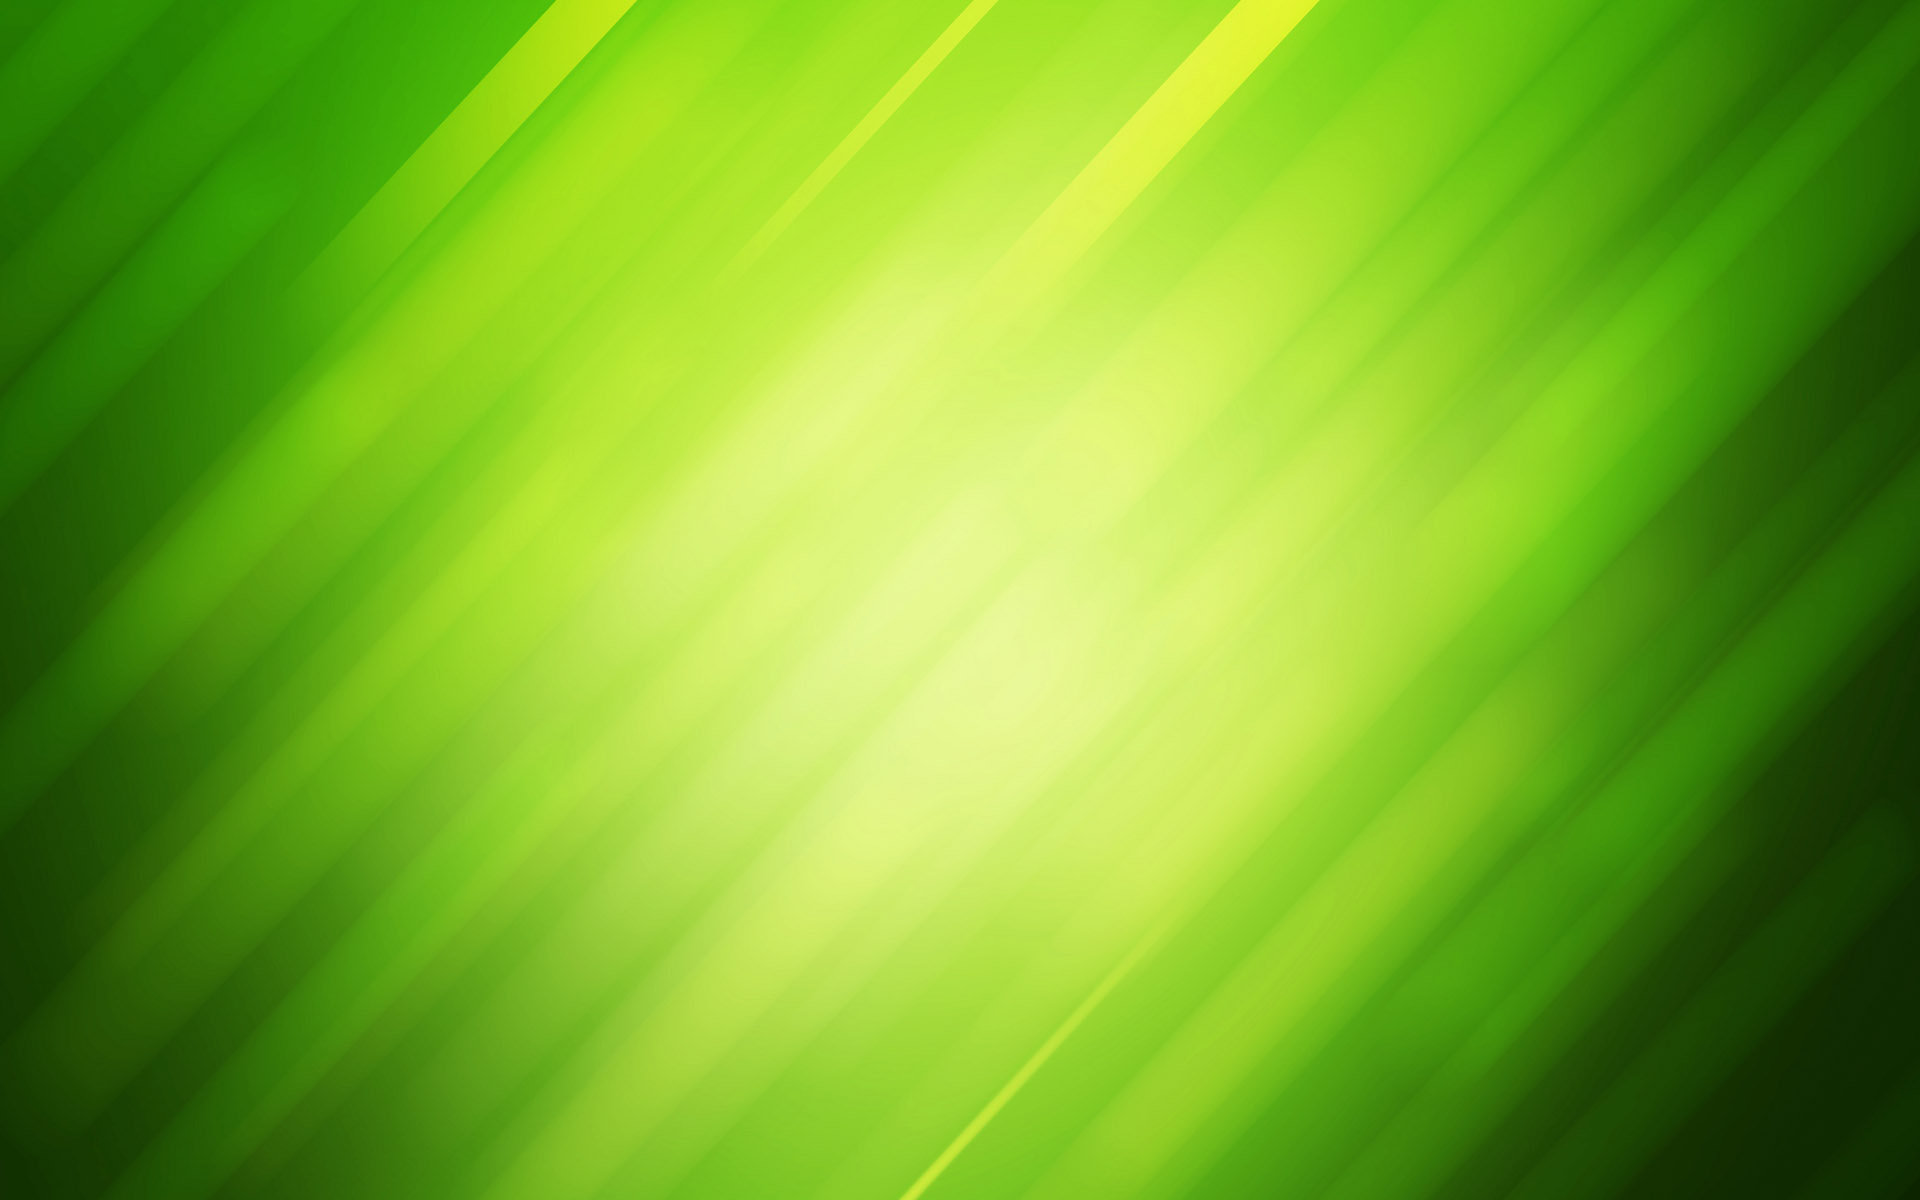 Cool Green Light Backgrounds Jpg 2971 color 1920x1200